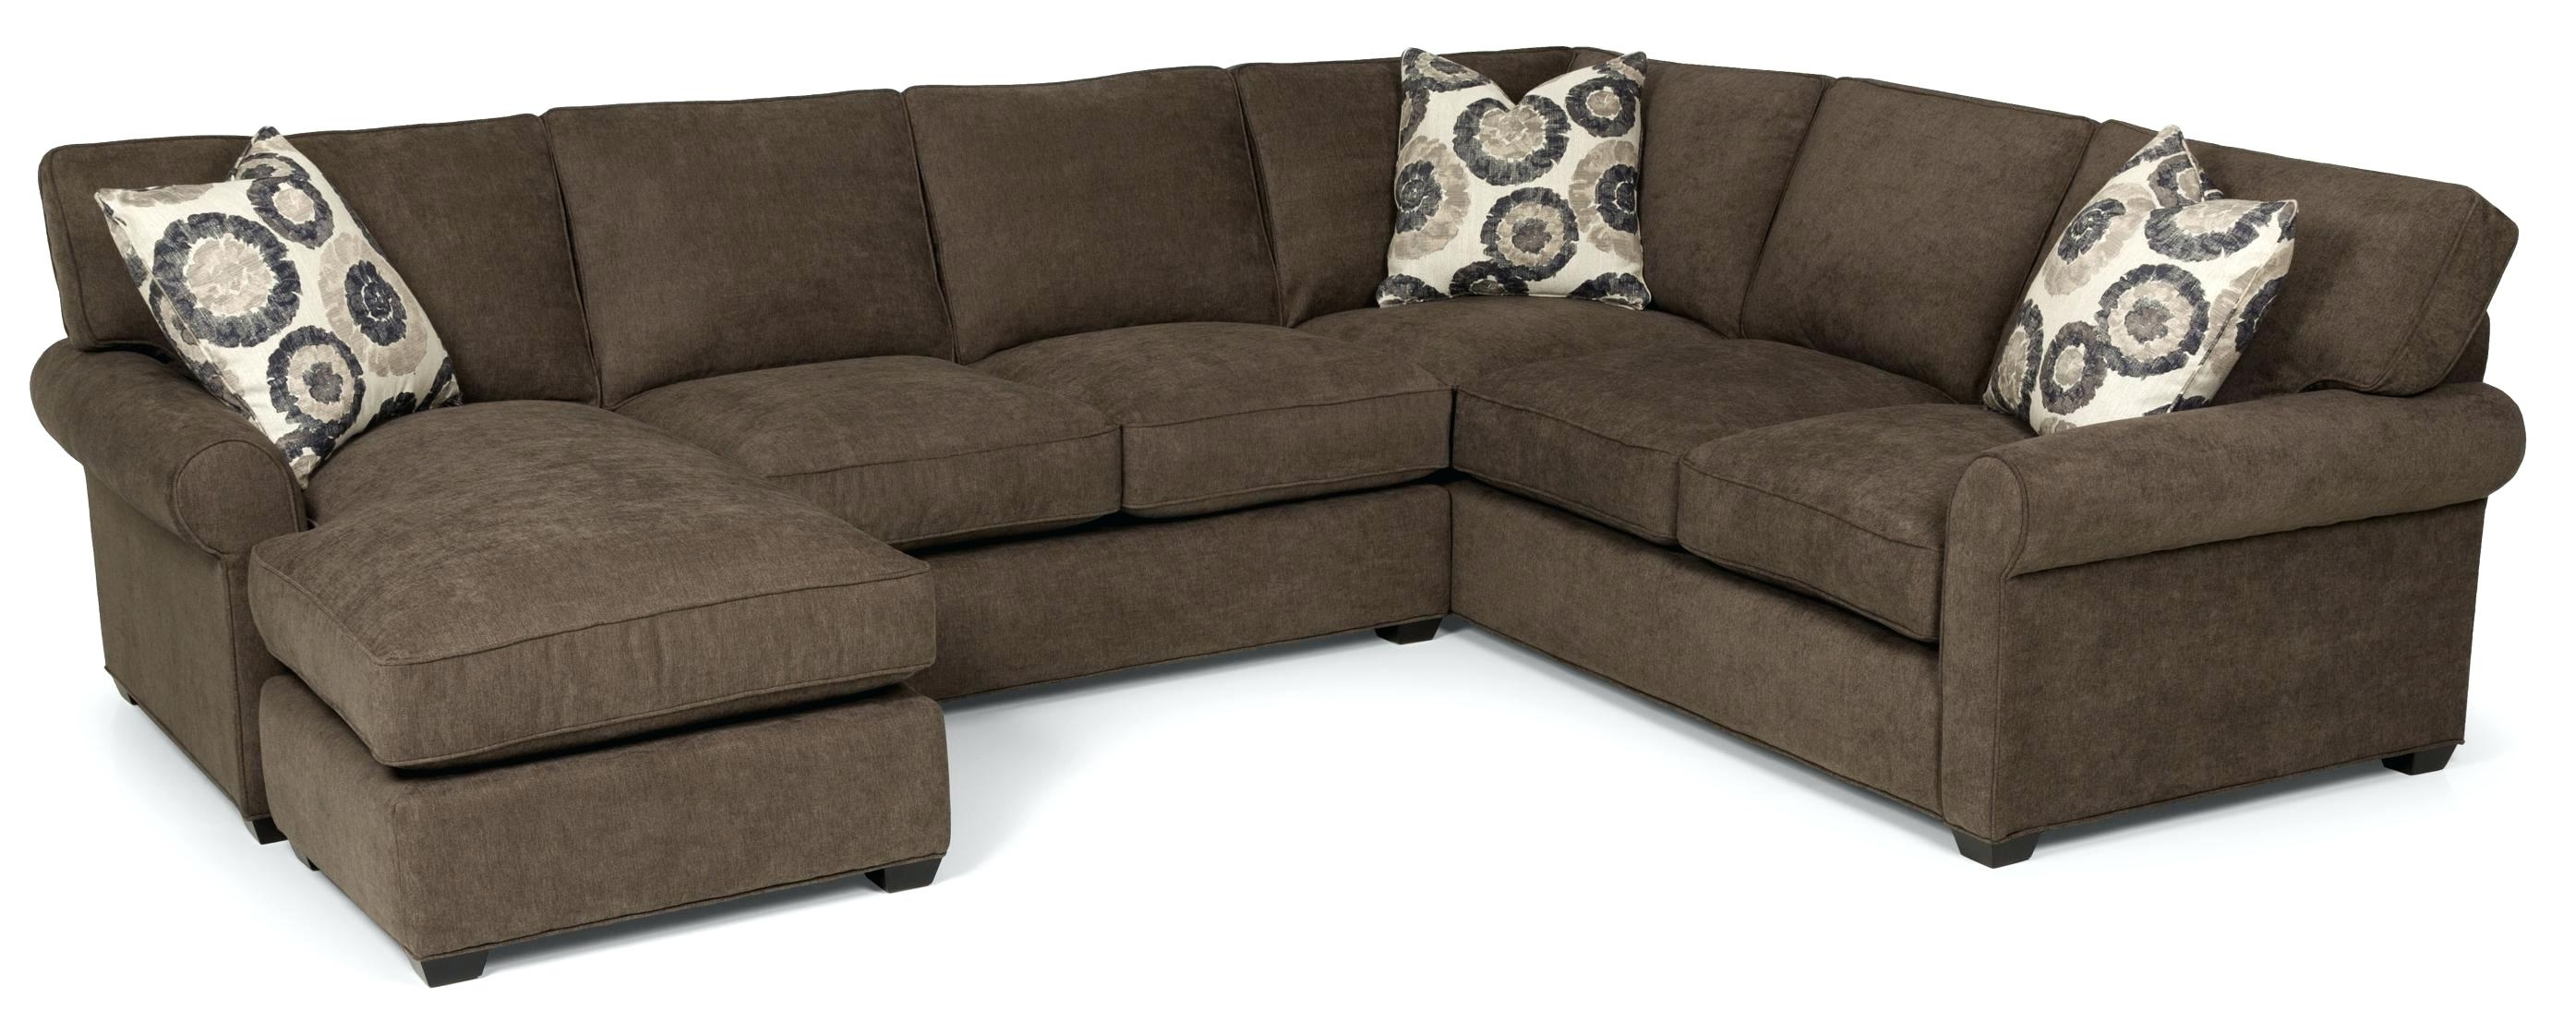 2 Piece Sectional Sofa With Chaise 2 Piece Sectional With Chaise Throughout Jobs Oat 2 Piece Sectionals With Left Facing Chaise (Photo 7 of 30)